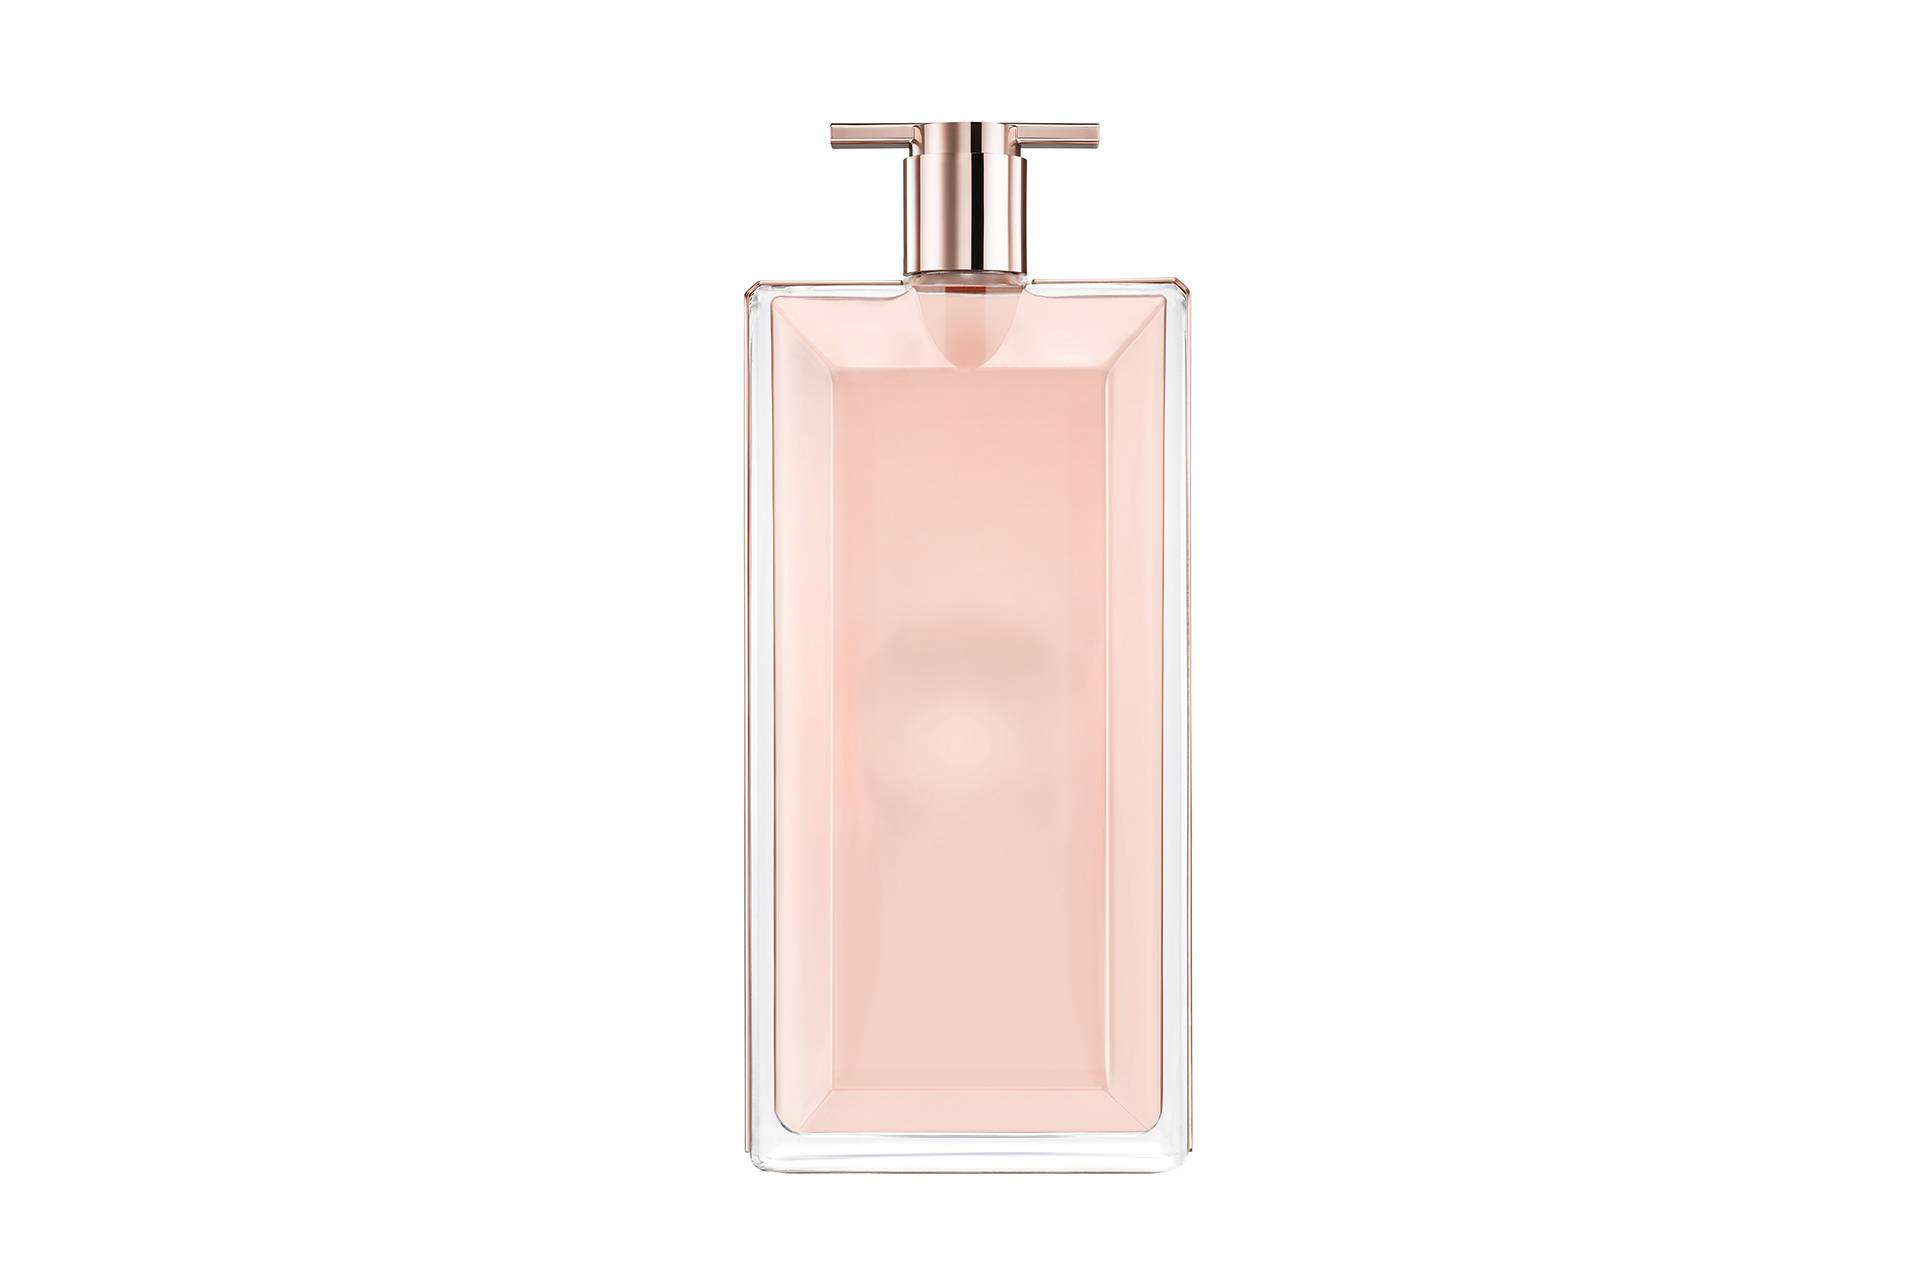 New Perfumes 2019: The Best Fragrance Launches To Know About